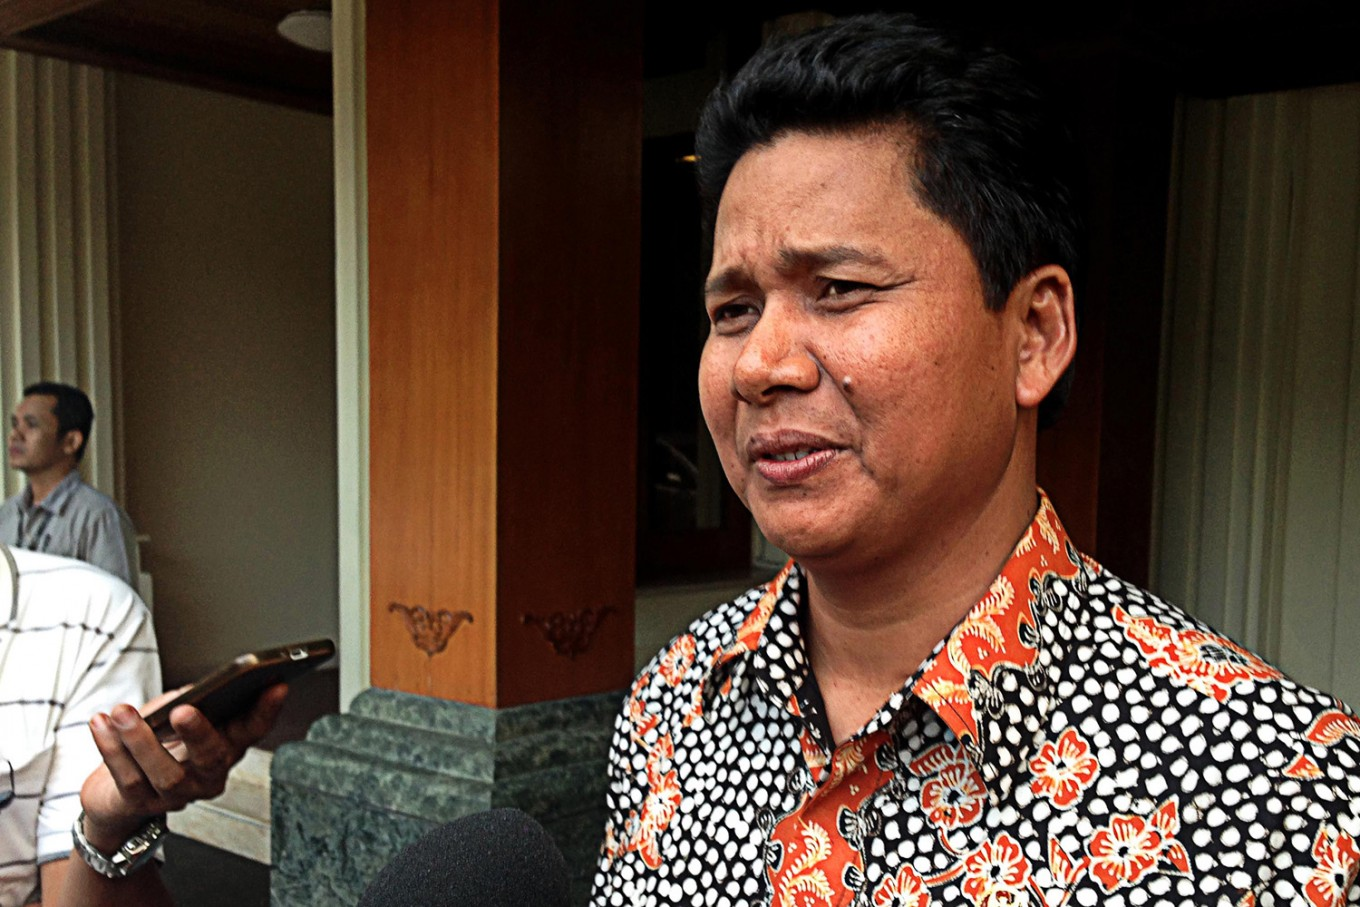 Komnas HAM to approach new police head for protection of religious freedom